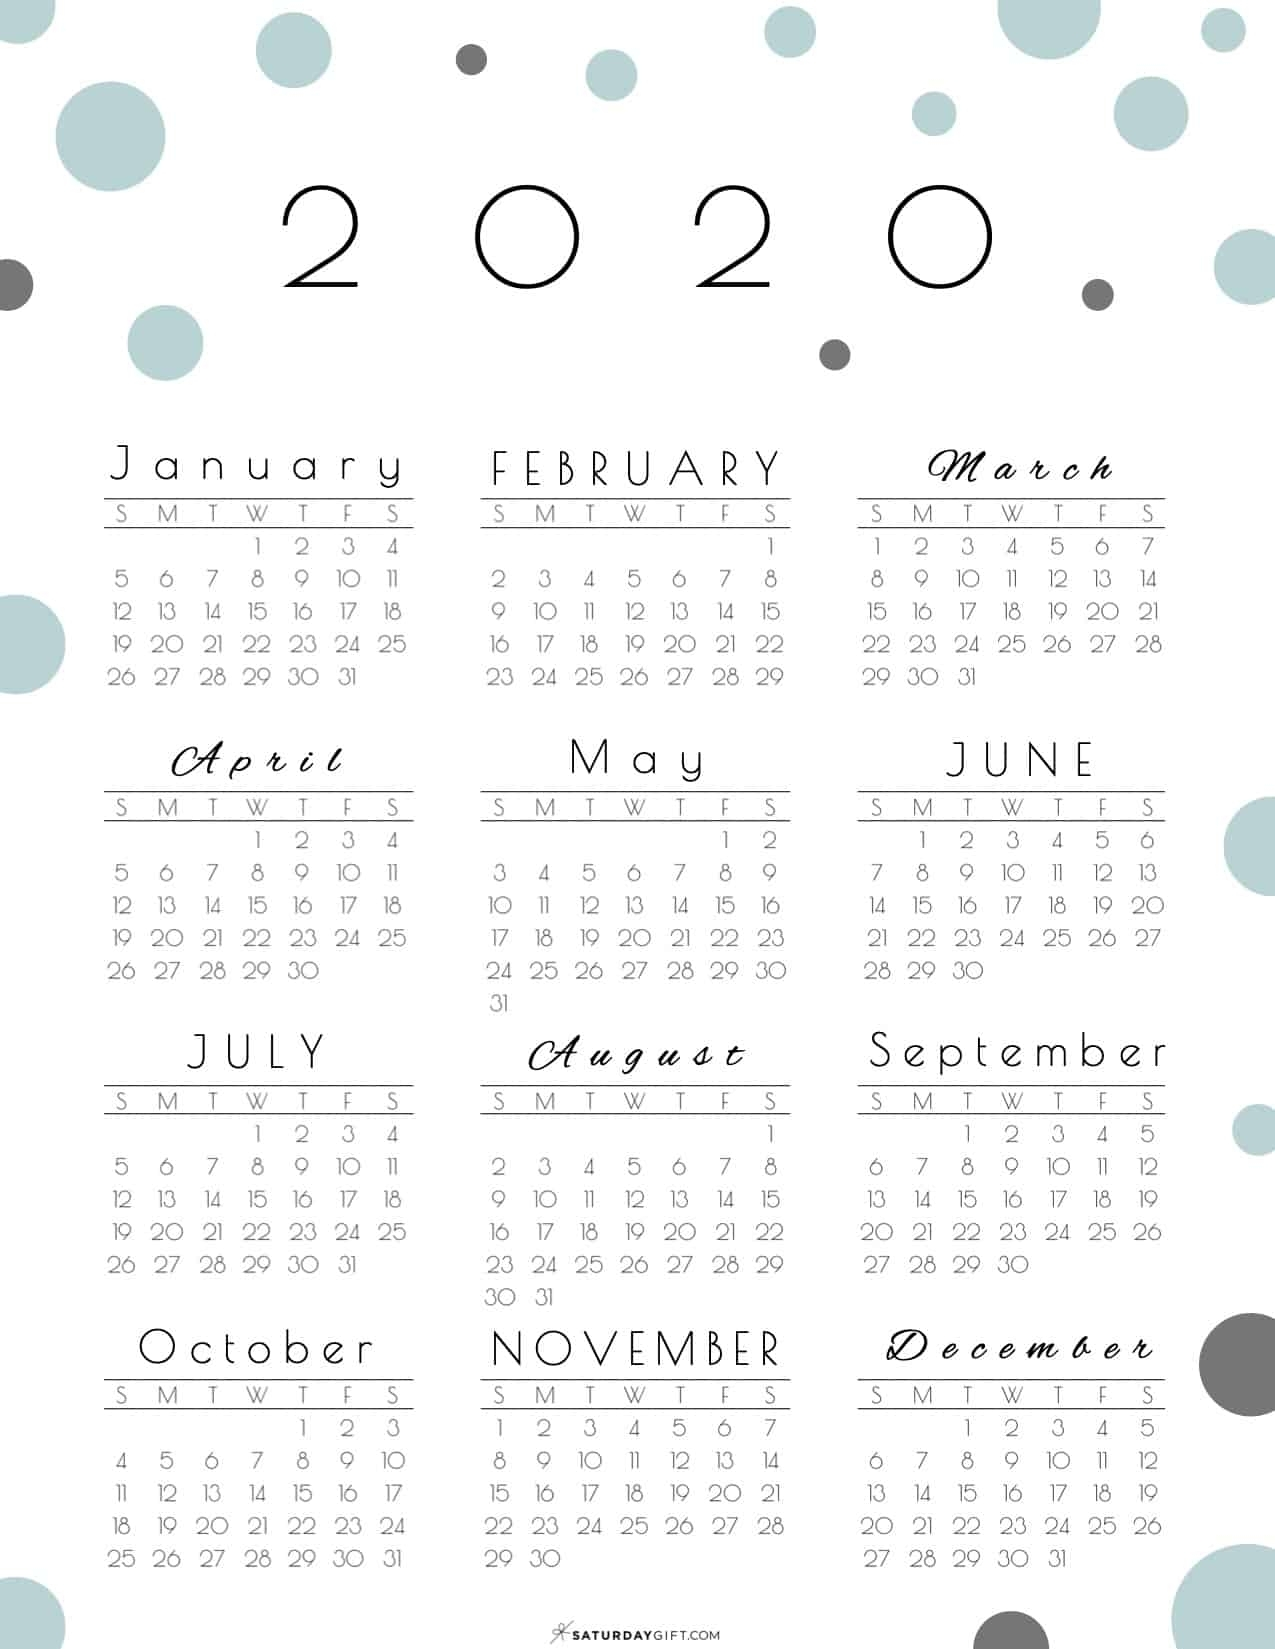 Year At A Glance Calendar 2020 - Pretty (And Free!) Printable intended for Year At A Glance 2020 Calendar